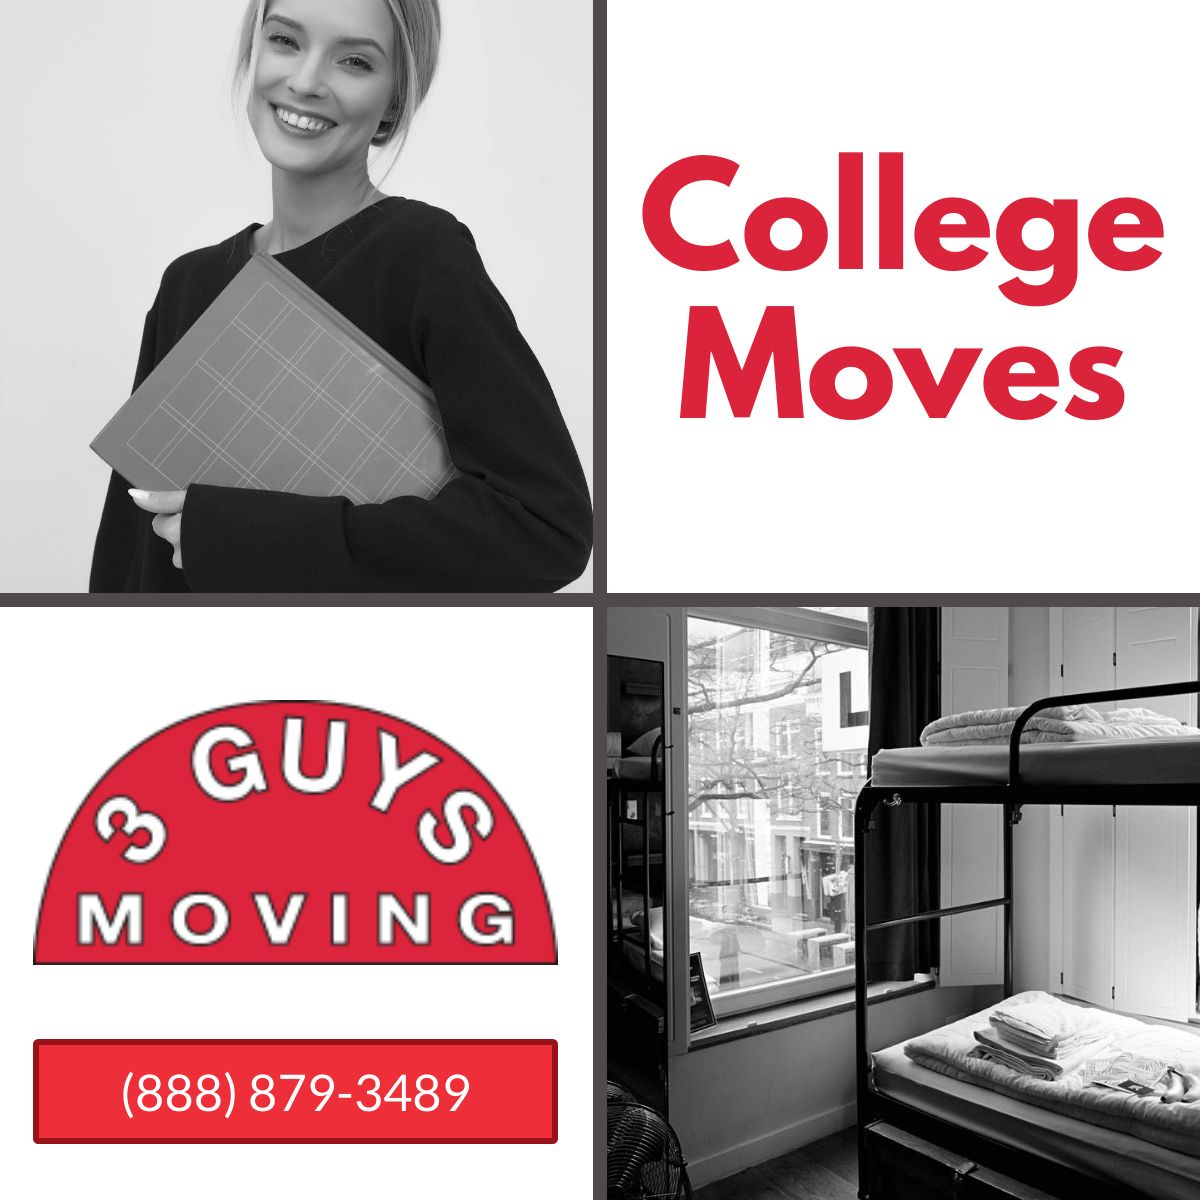 College Moves - College Moves